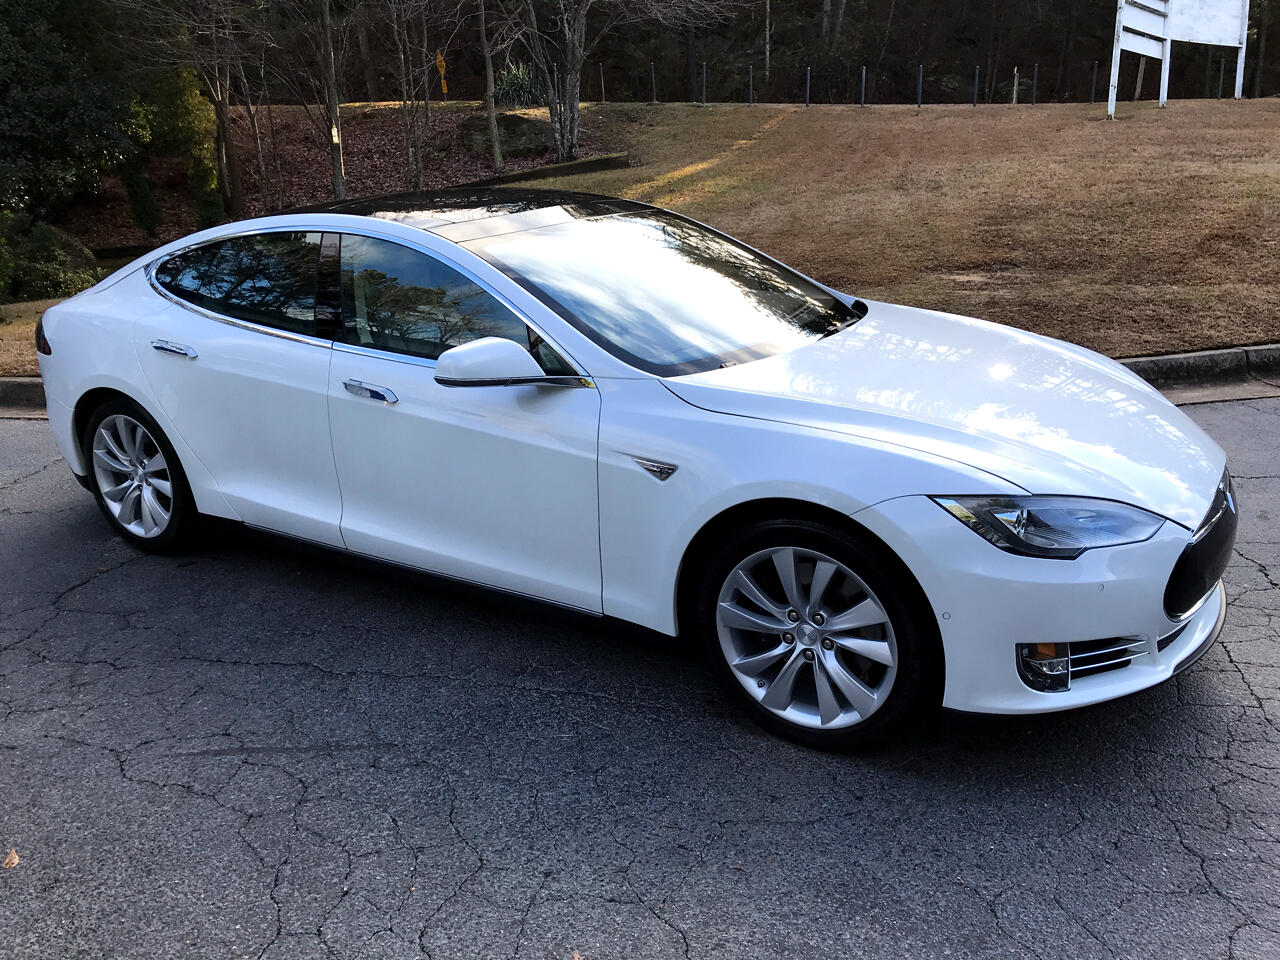 2016 Tesla Model S 4dr Sdn AWD 85D